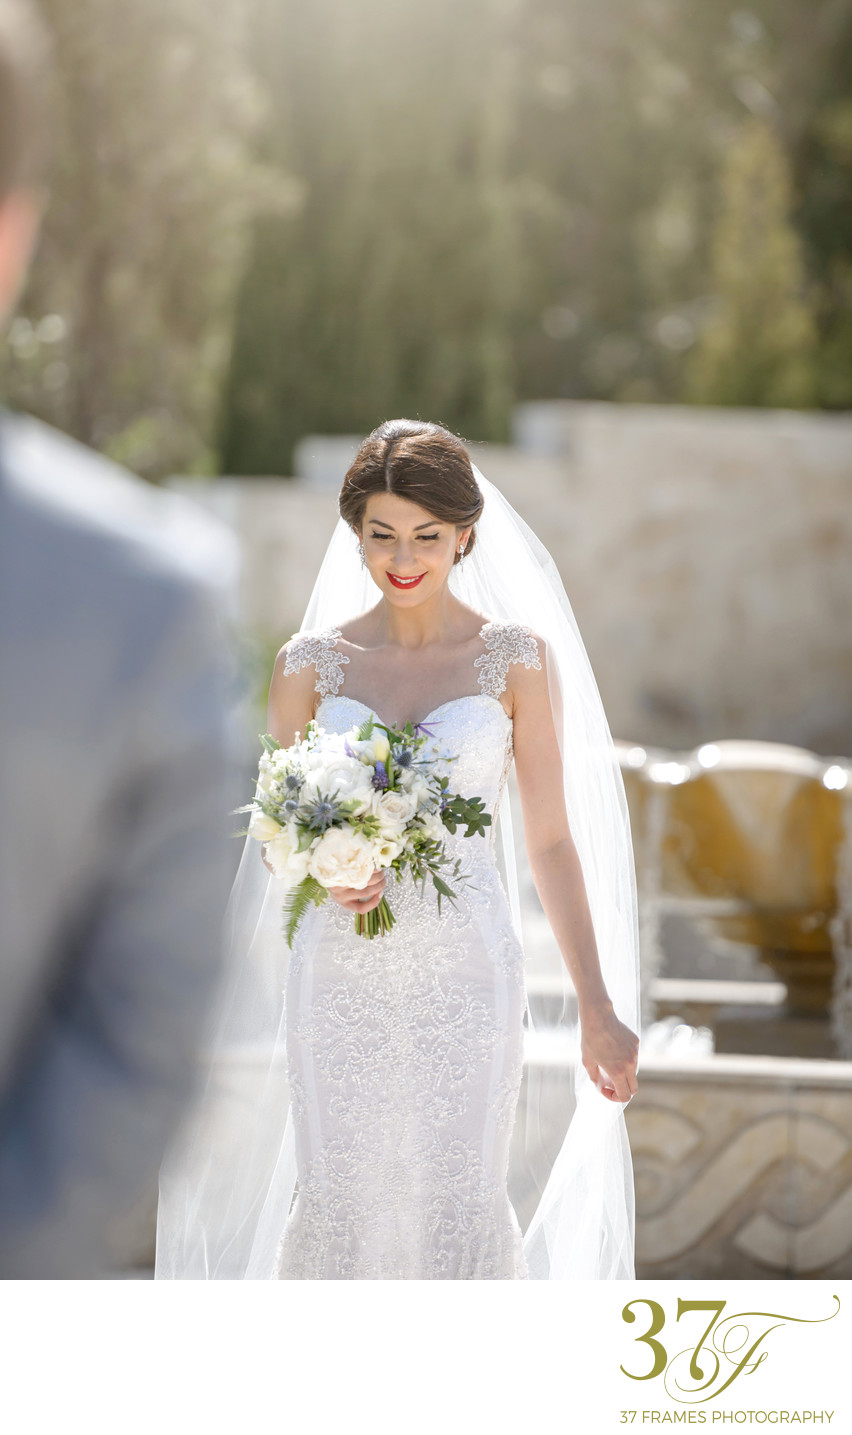 First Look | Destination Wedding Photography Cyprus